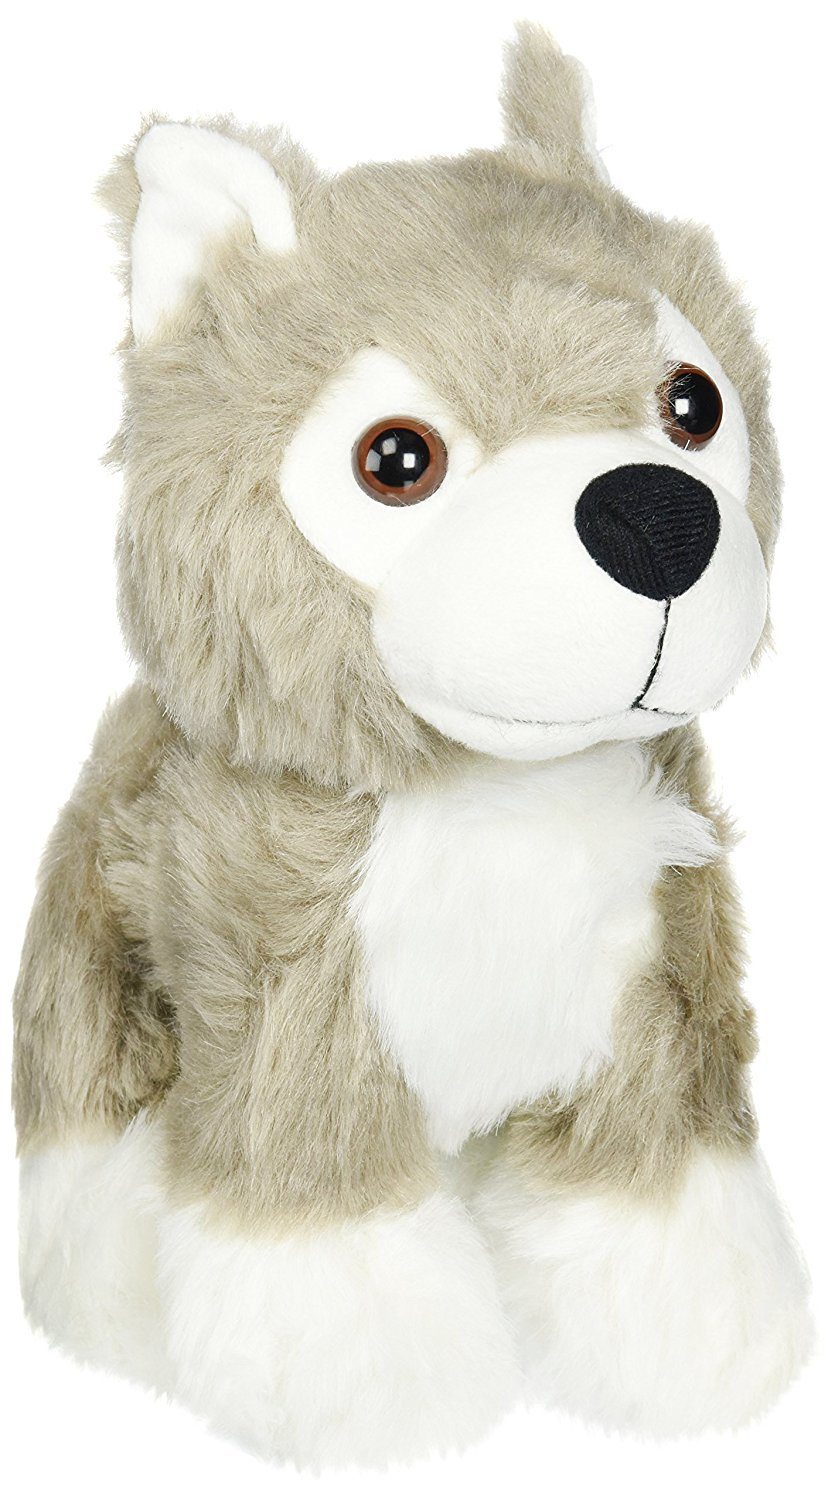 game-of-thrones-stuffed-direwolf